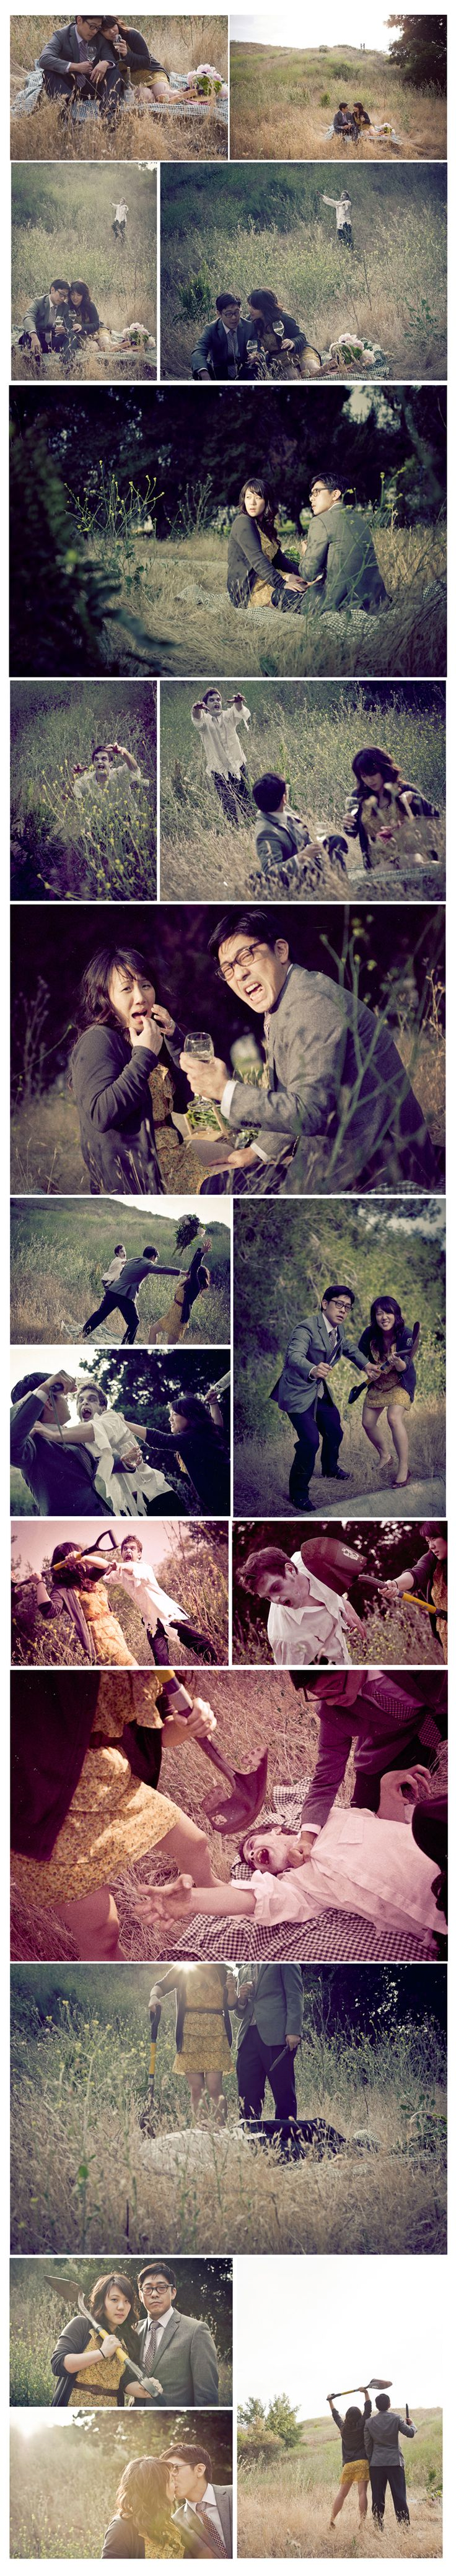 zombie engagement.: Engagement Pictures, Zombies Engagement, Photo Ideas, Engagement Photos, Zombie Engagement, Engagement Pics, Engagement Photo Shoots, Hilarious, Photography